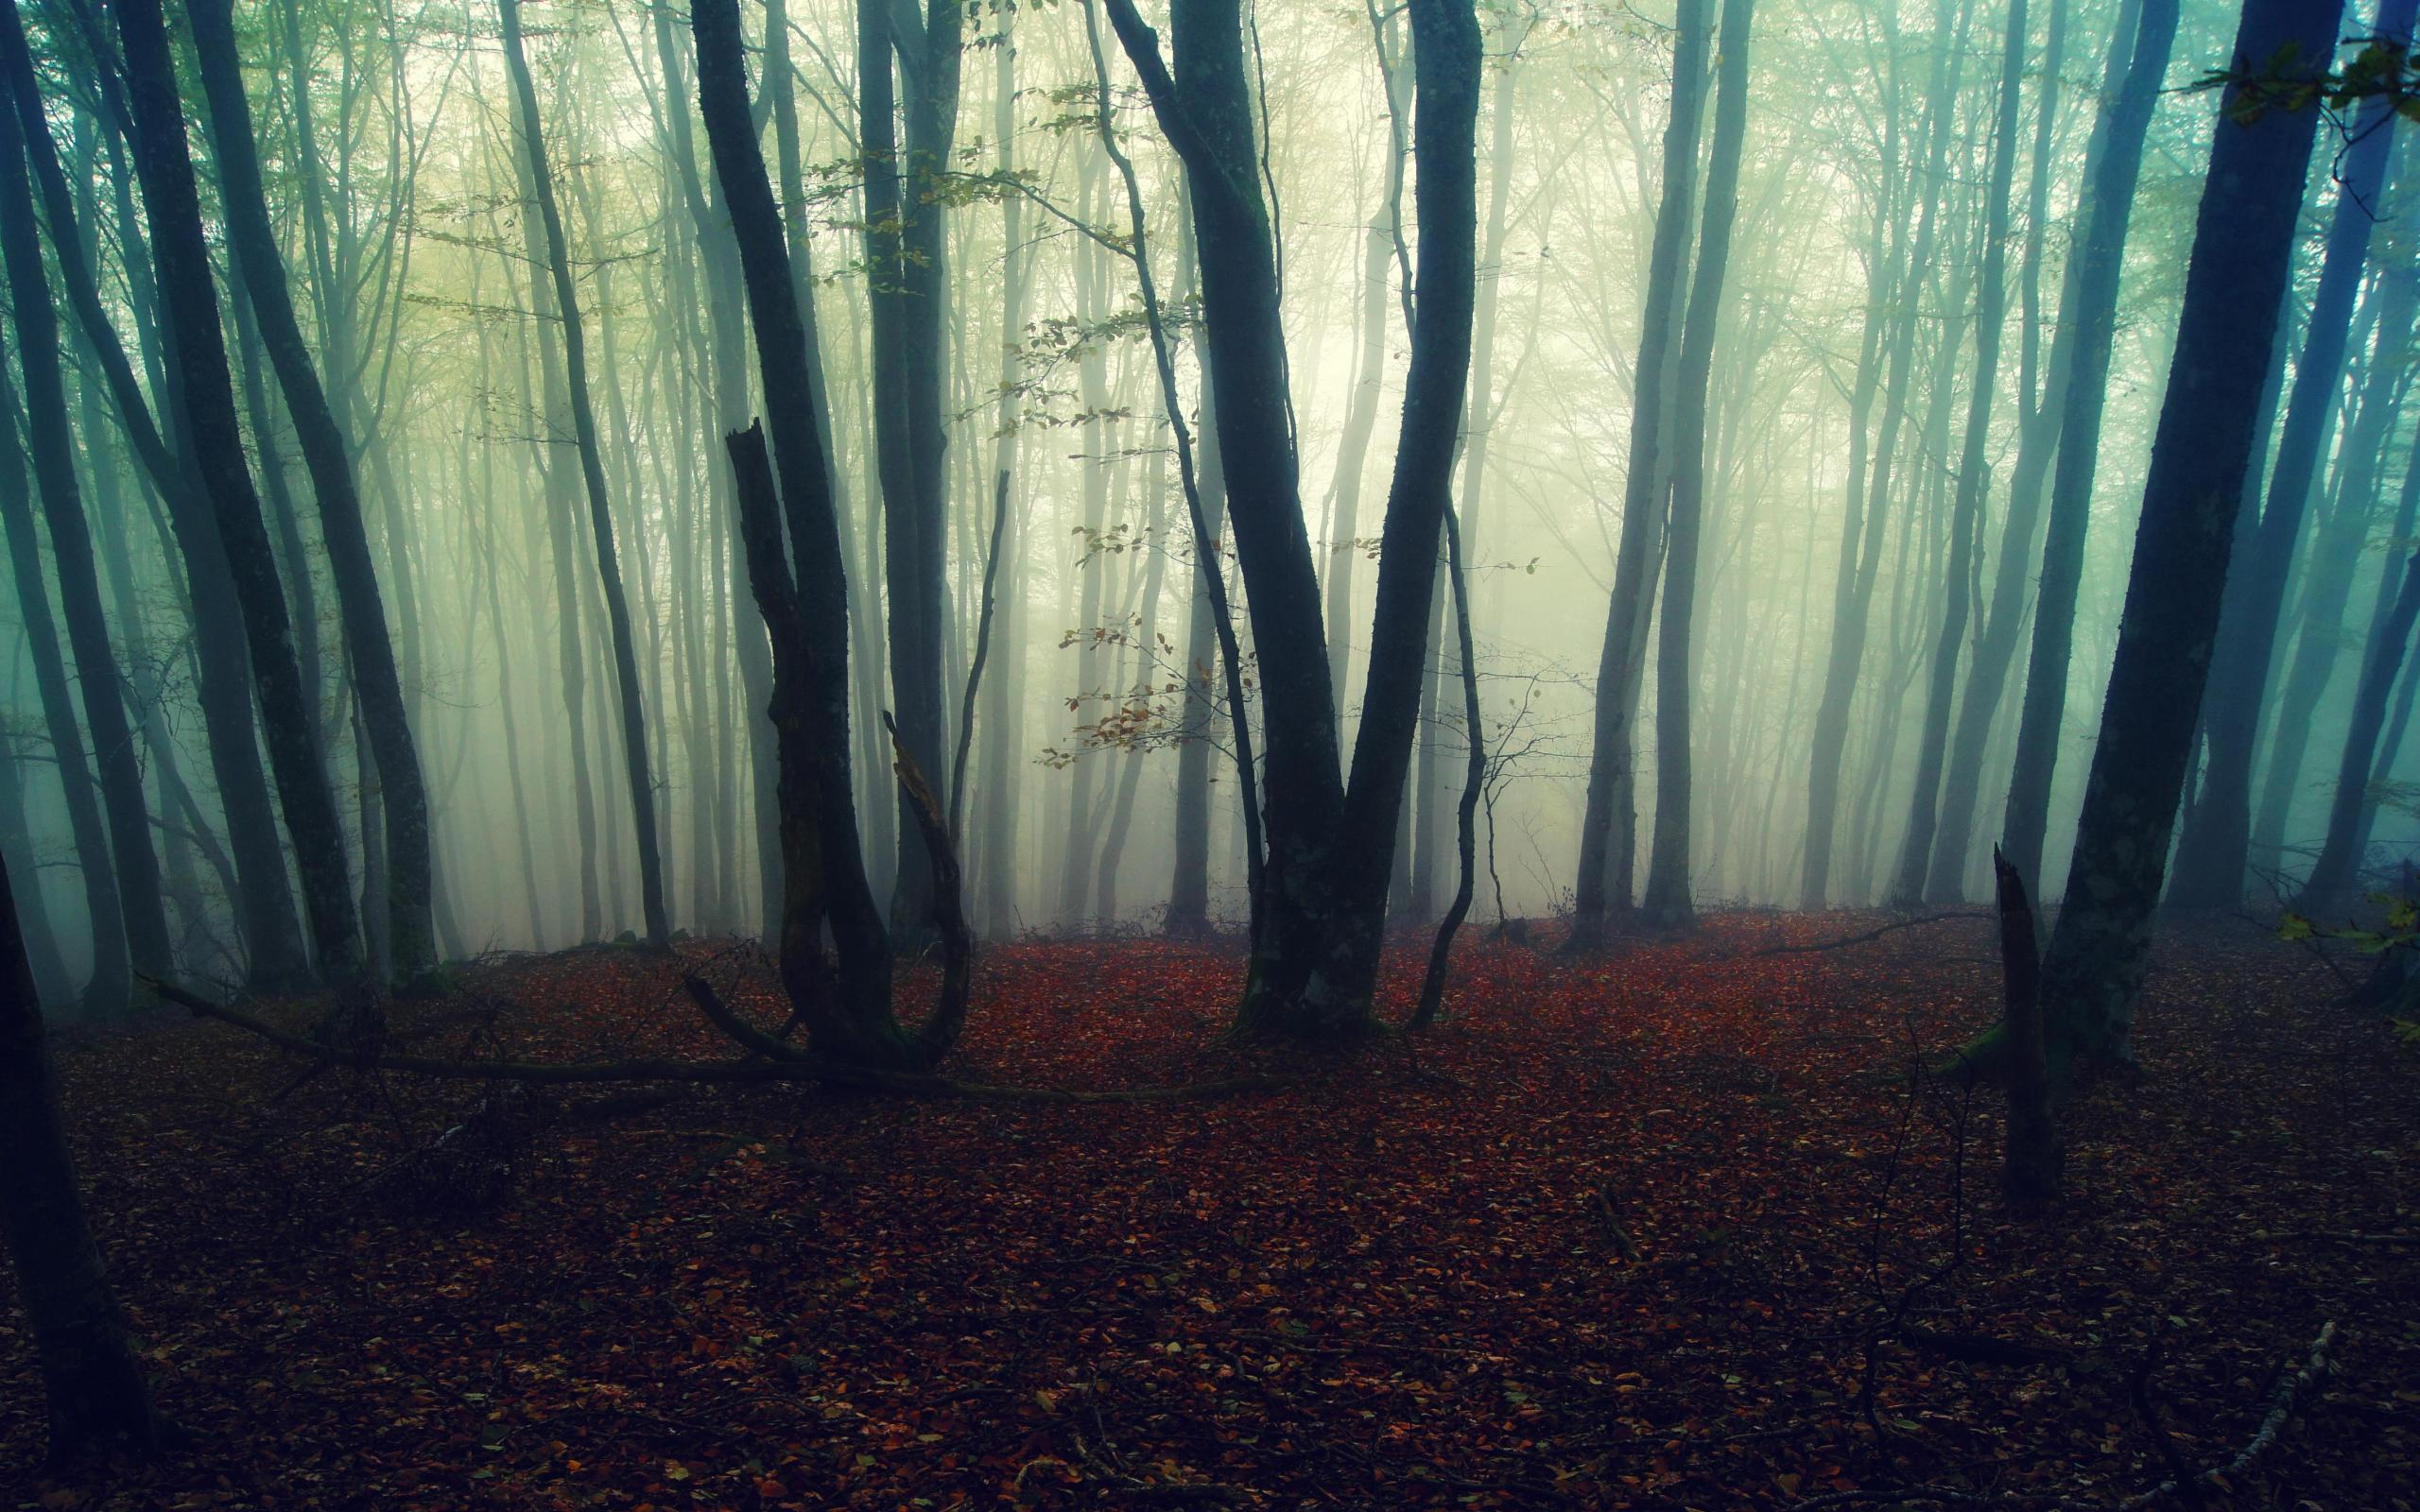 Autumn Wallpaper   foggy forest Wallpapers   HD Wallpapers 93147 2560x1600